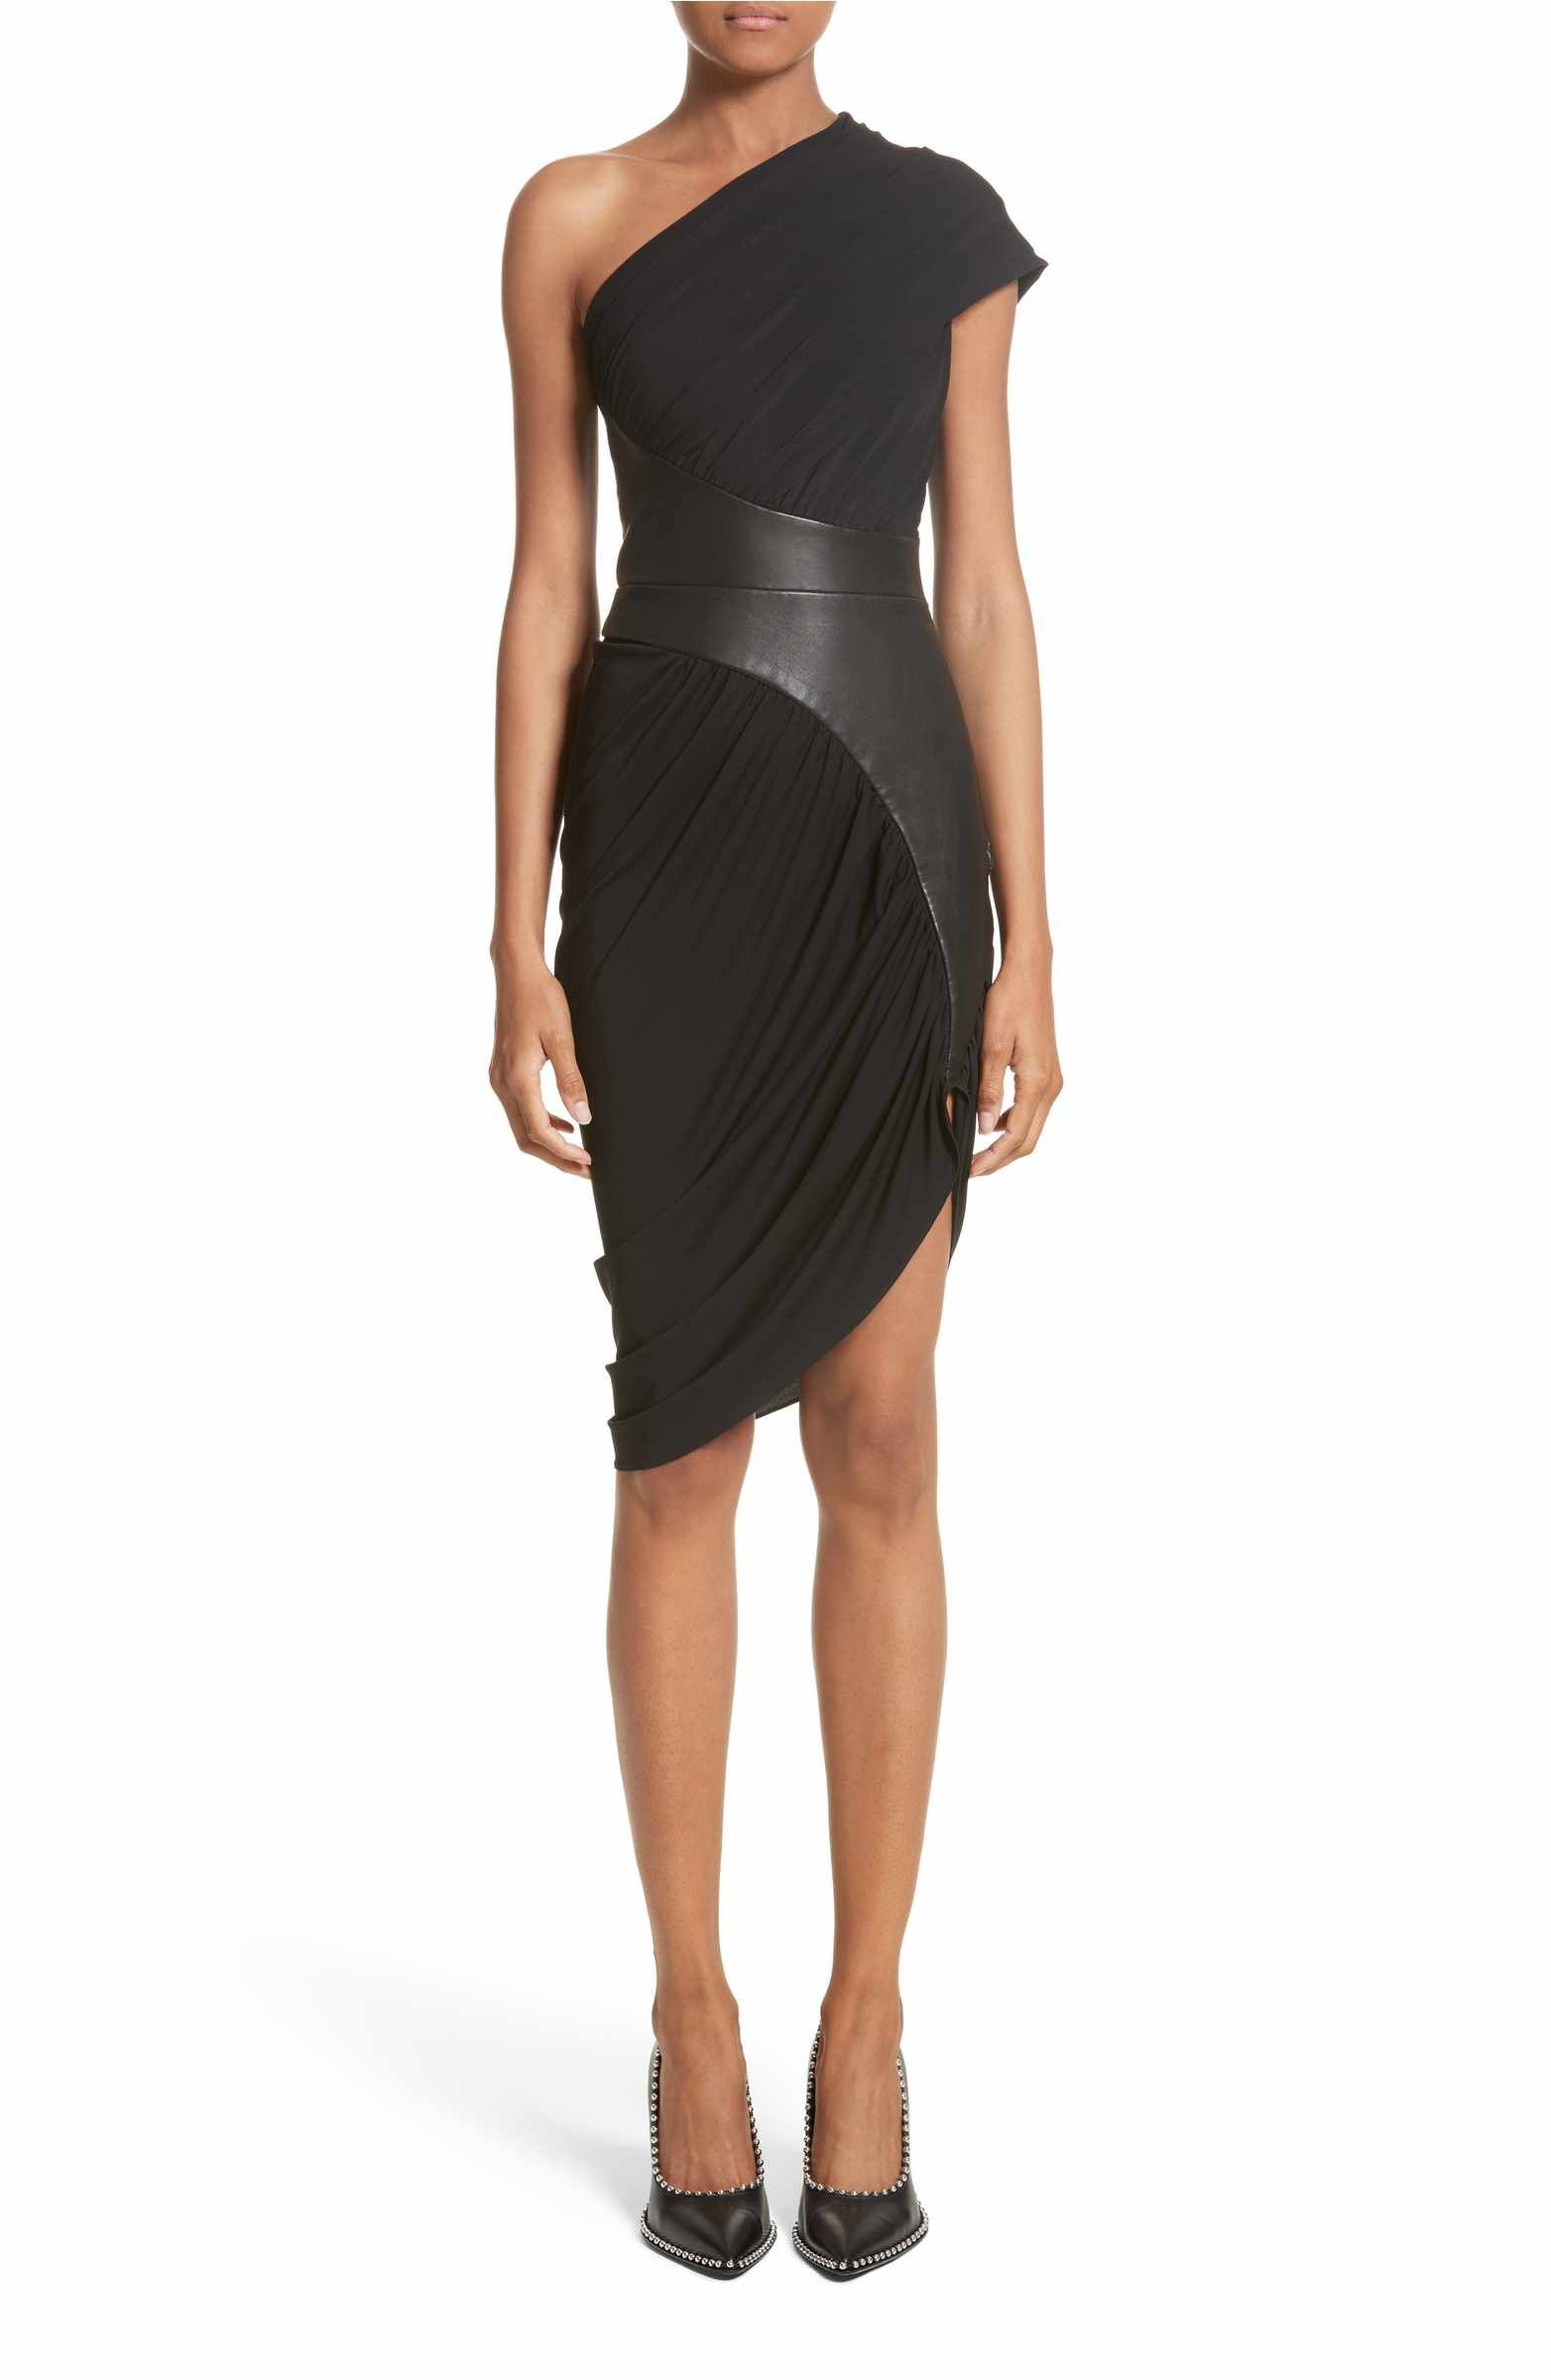 d6e87157c5d2b Main Image - Alexander Wang Leather Detail Draped One-Shoulder Dress  Cocktail Dress Classy Elegant